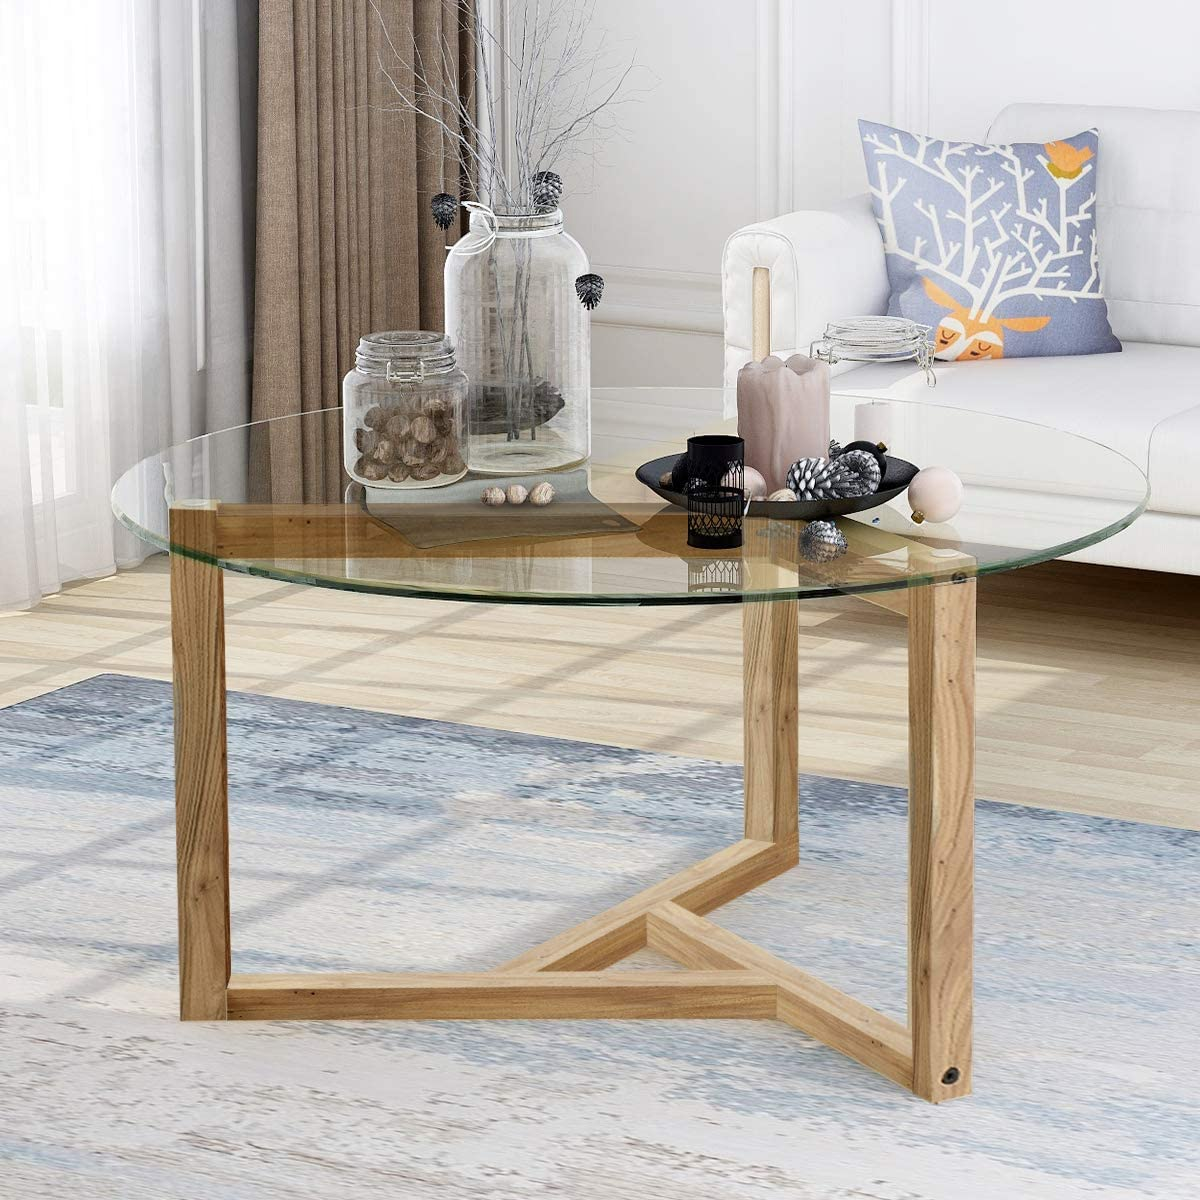 Amazon Com Modern Round Coffee Table 35 Glass Coffee Table Easy Assembly Glass Coffee Table With Wood Leg For Living Room Dining Room With Wood Frame Kitchen Dining